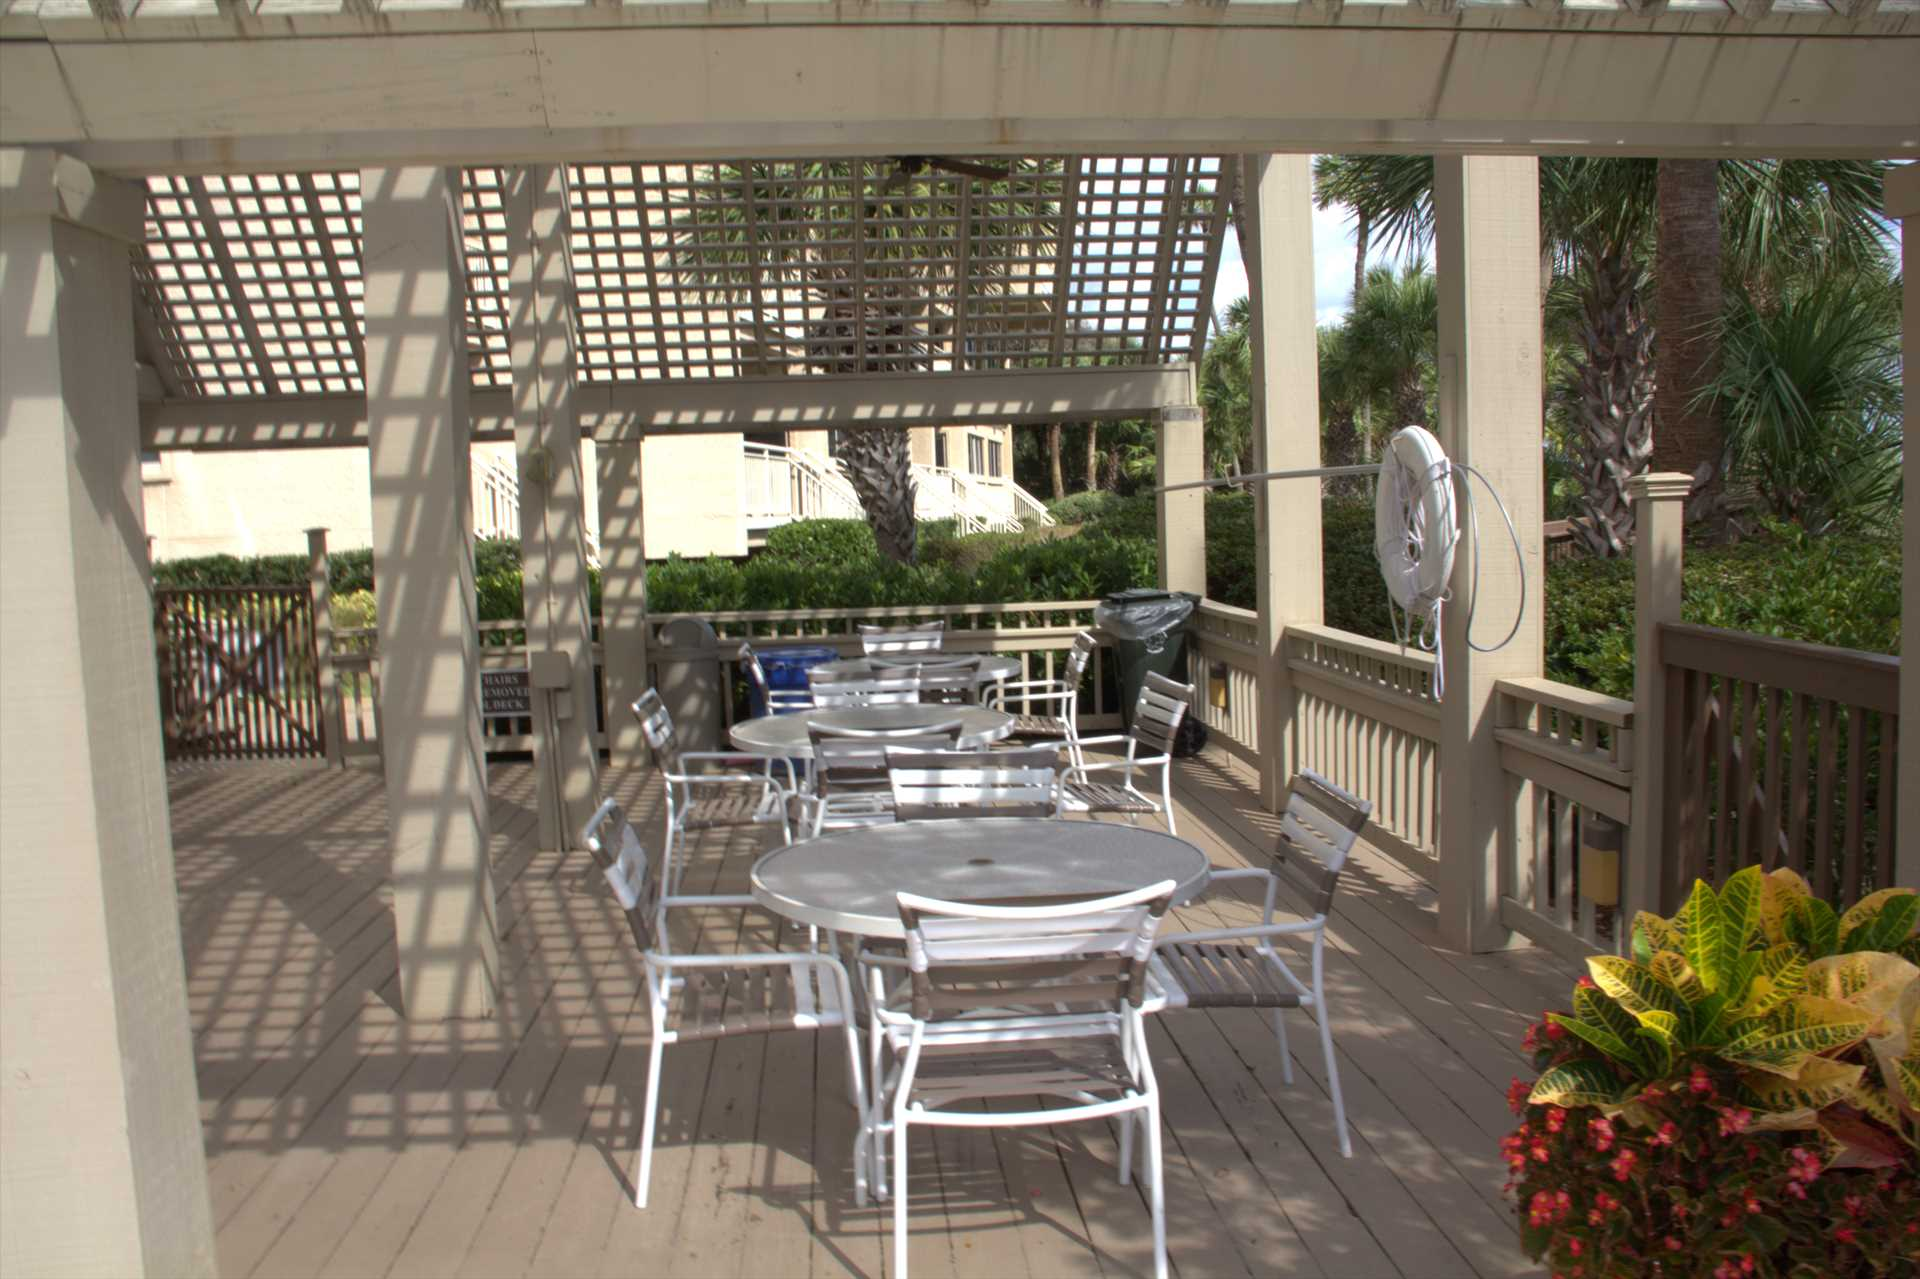 Covered area to have your meal at